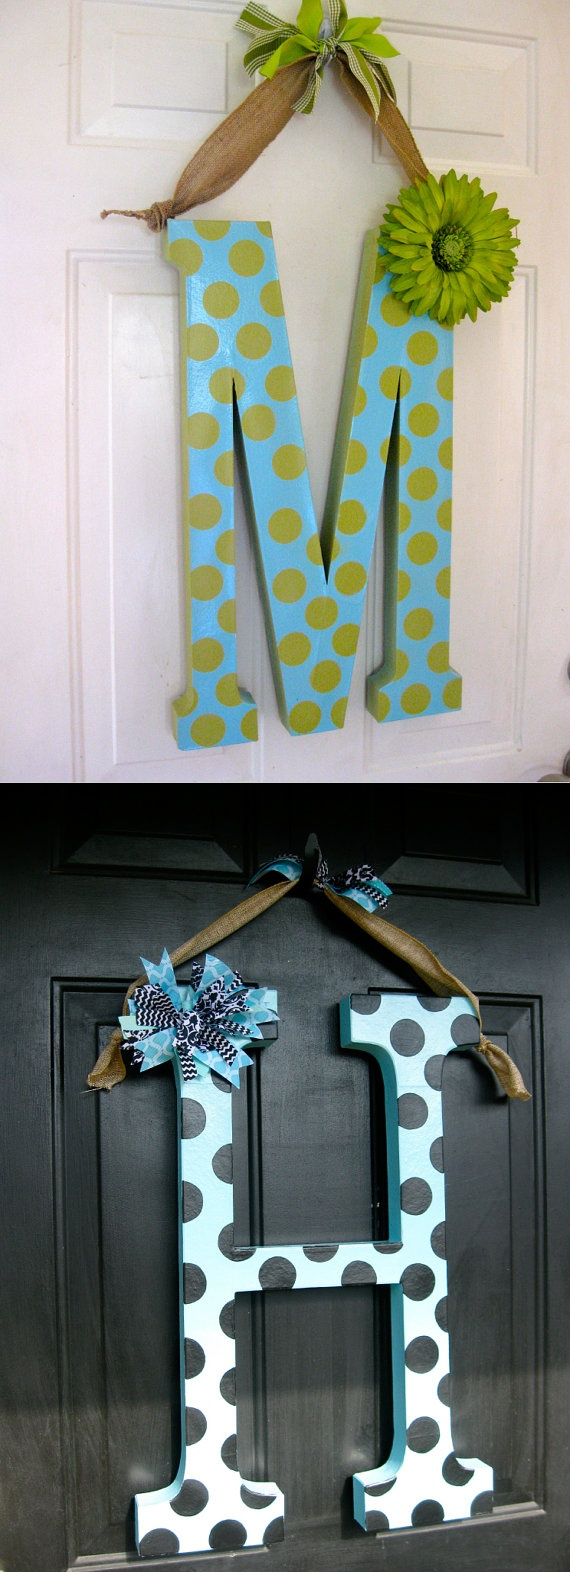 Letter Wreath Etsy 24 Inch Paper M229;ch233; Polka Dot Letter Wreath Polka By